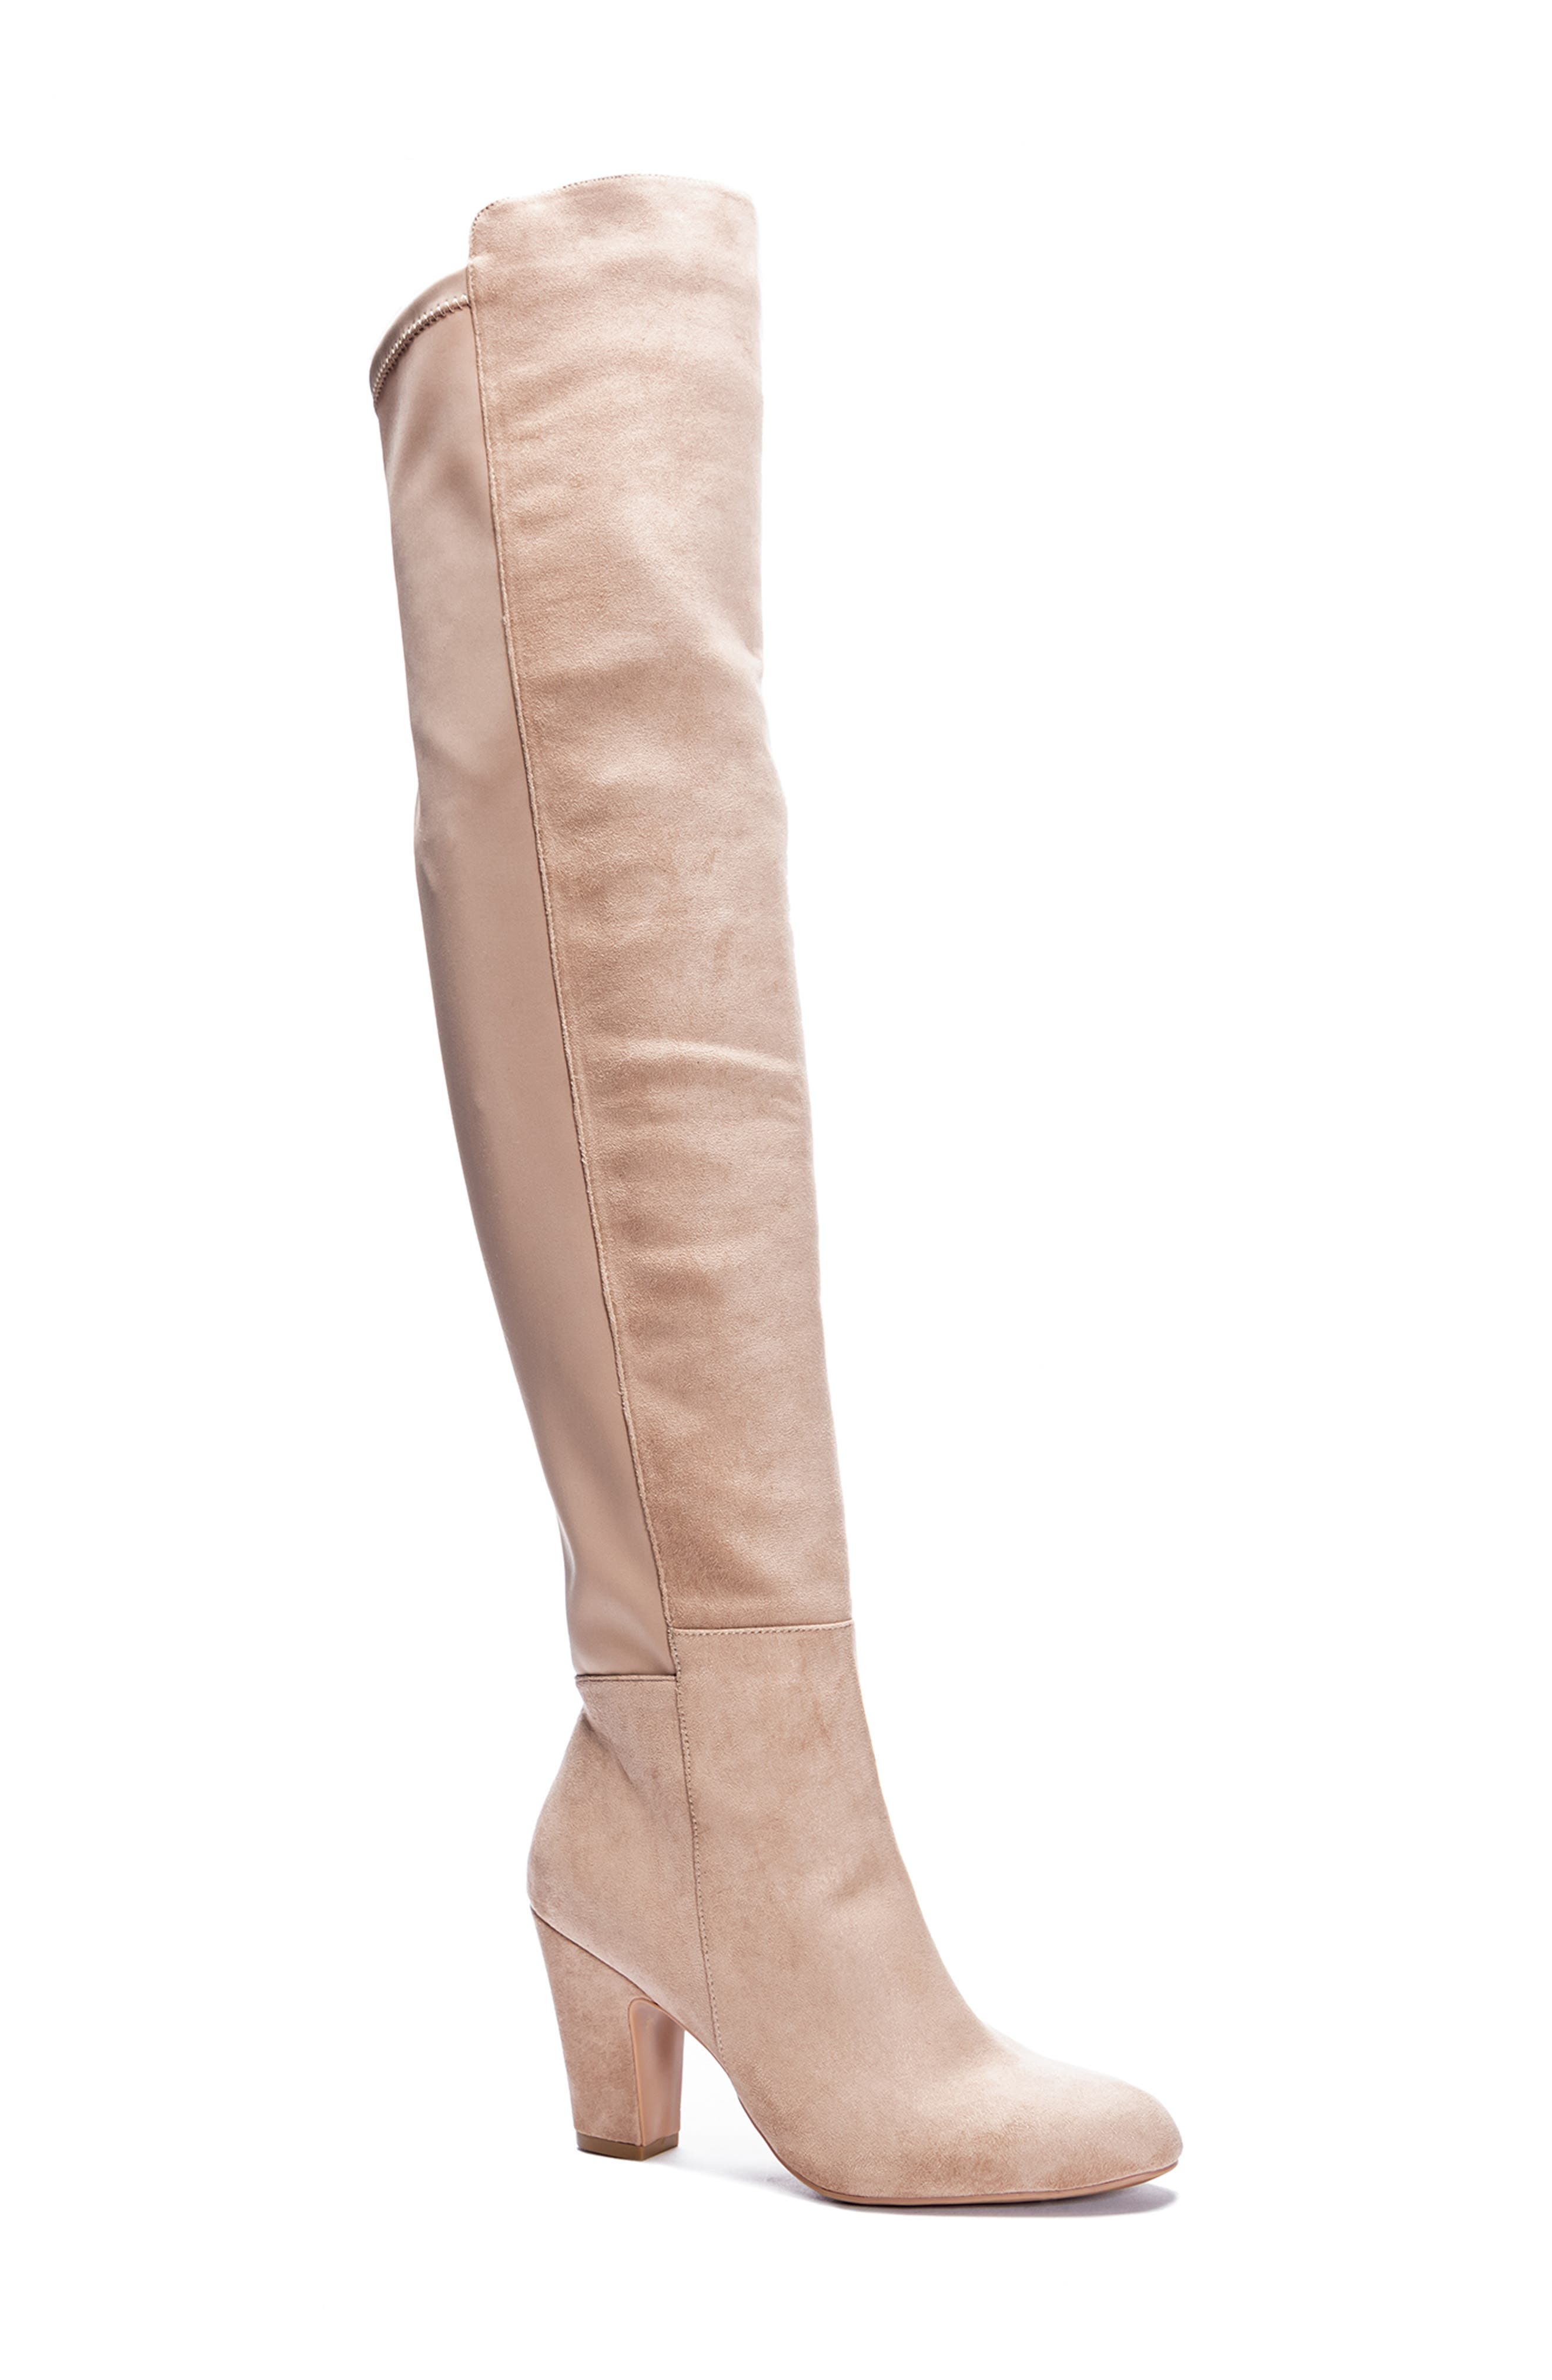 Over-the-Knee Boots for Women   Nordstrom